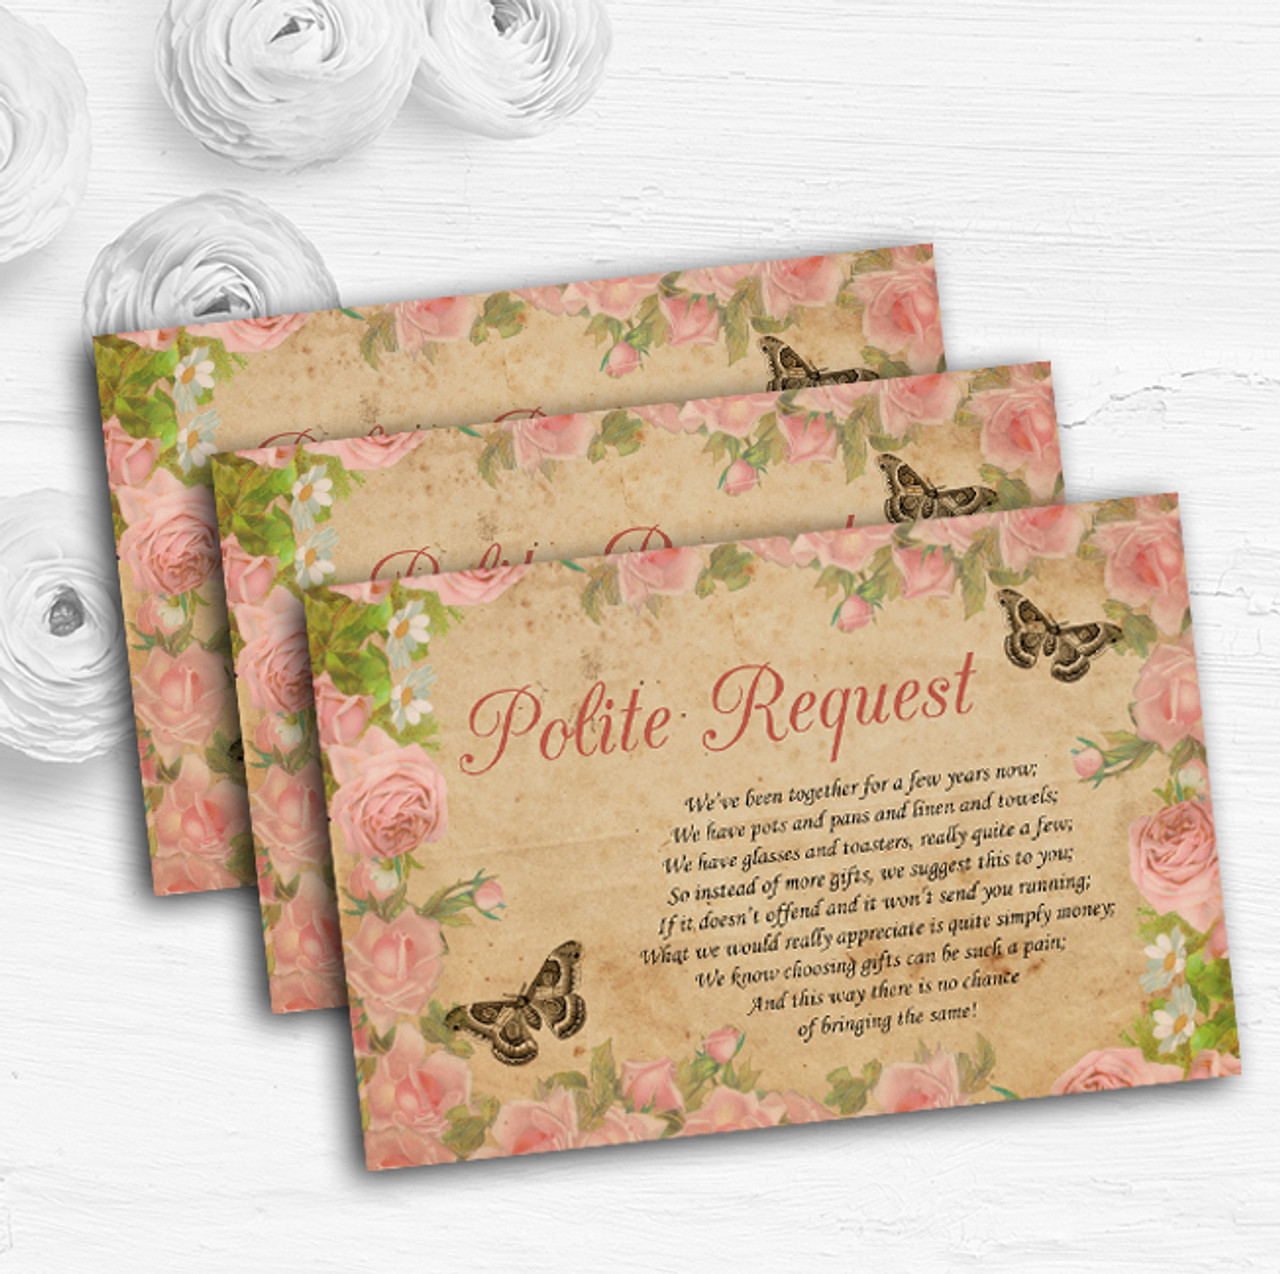 Pink Rose Vintage Shabby Chic Postcard Custom Wedding Gift Money Poem Cards  - The Card Zoo